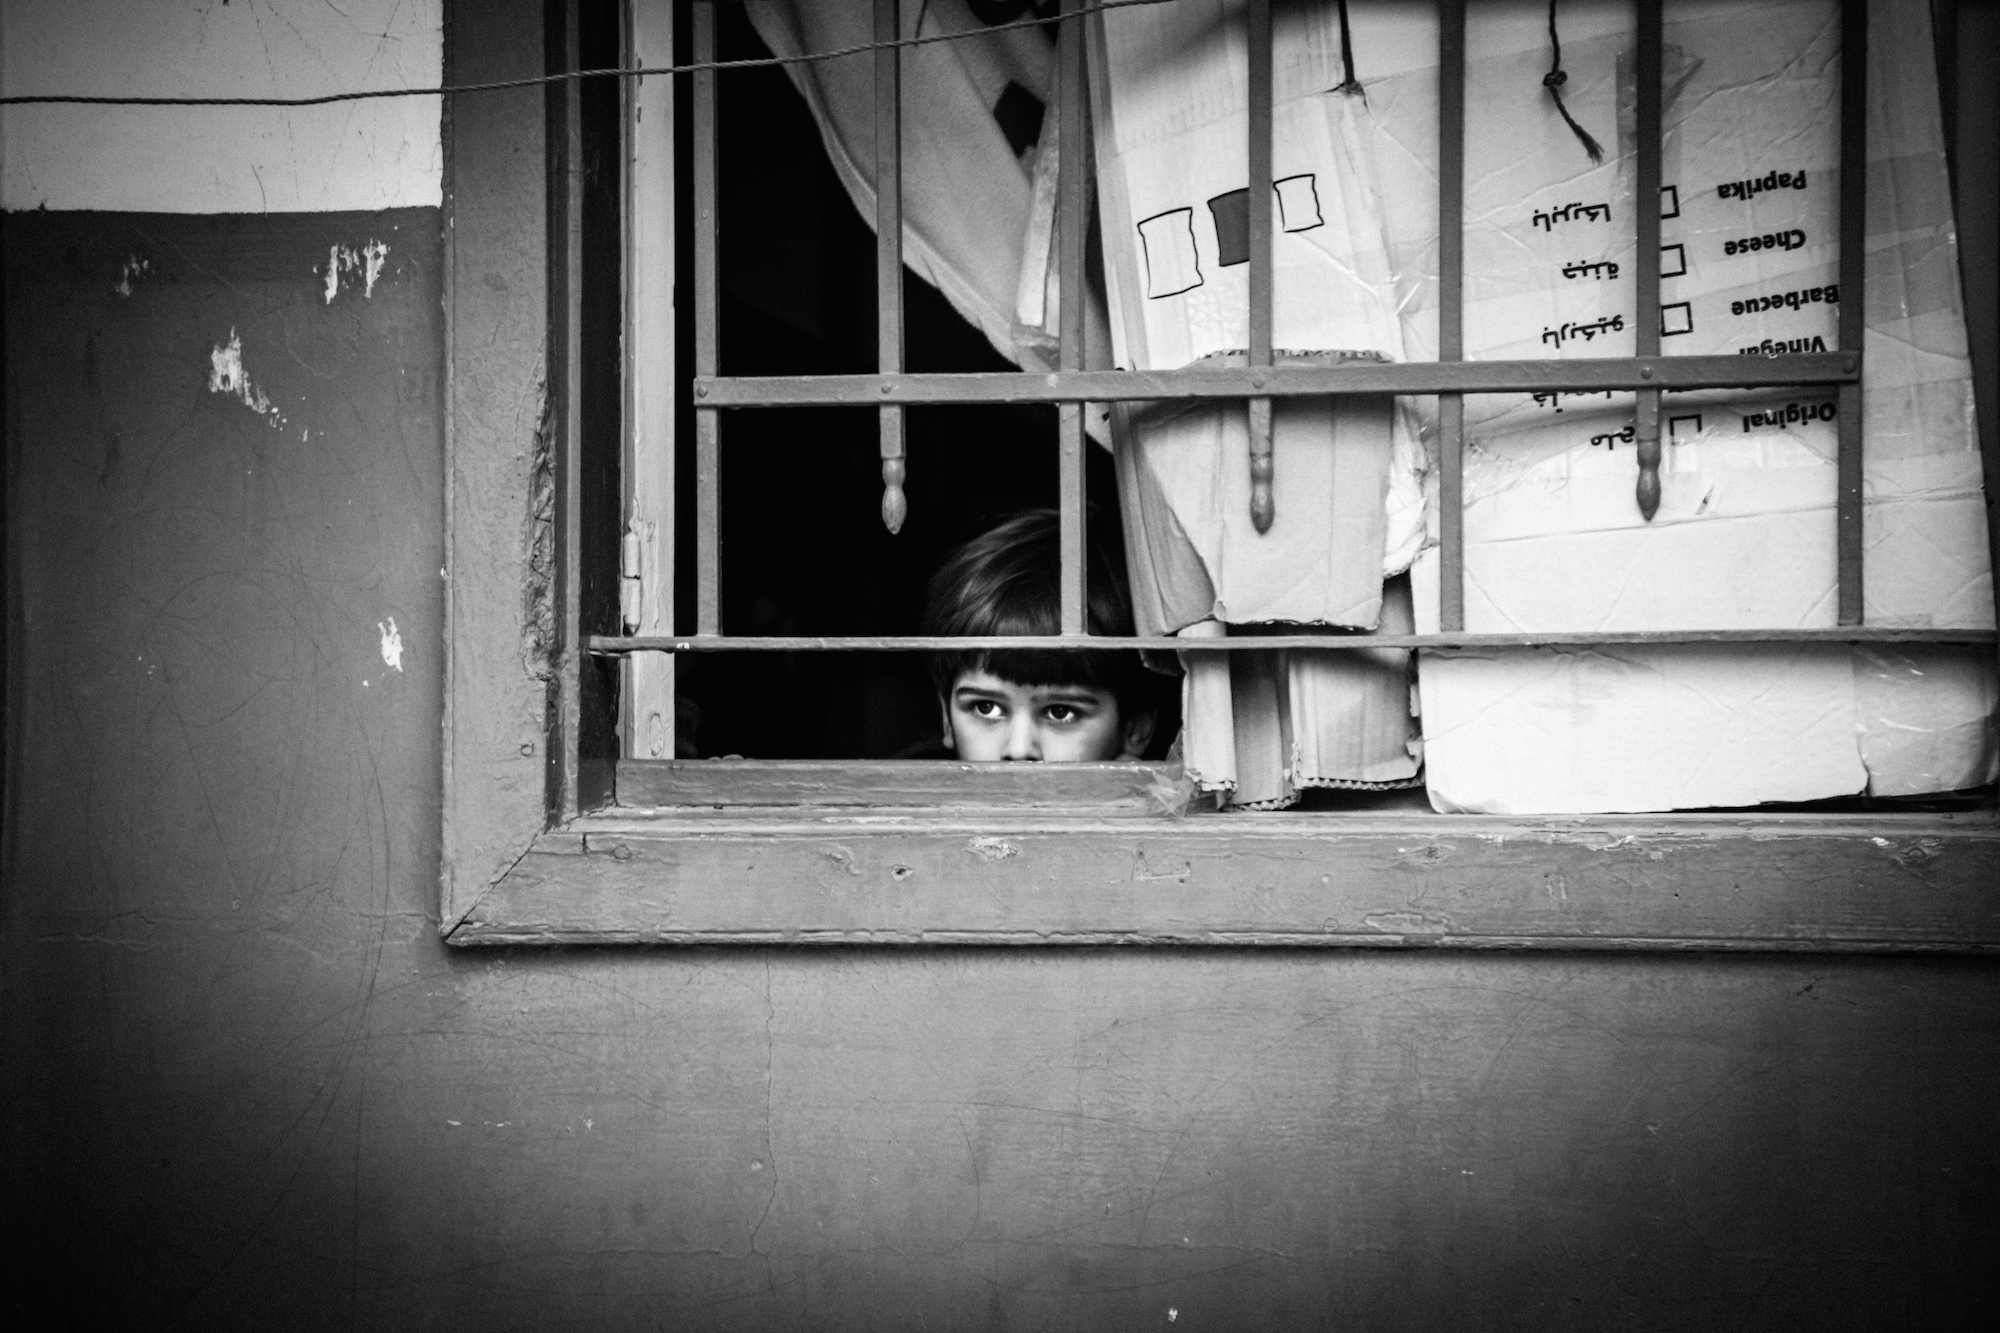 A young Syrian child peers out of a window in Lebanon's Beka'a Valley. Christina Malkoun/IRIN